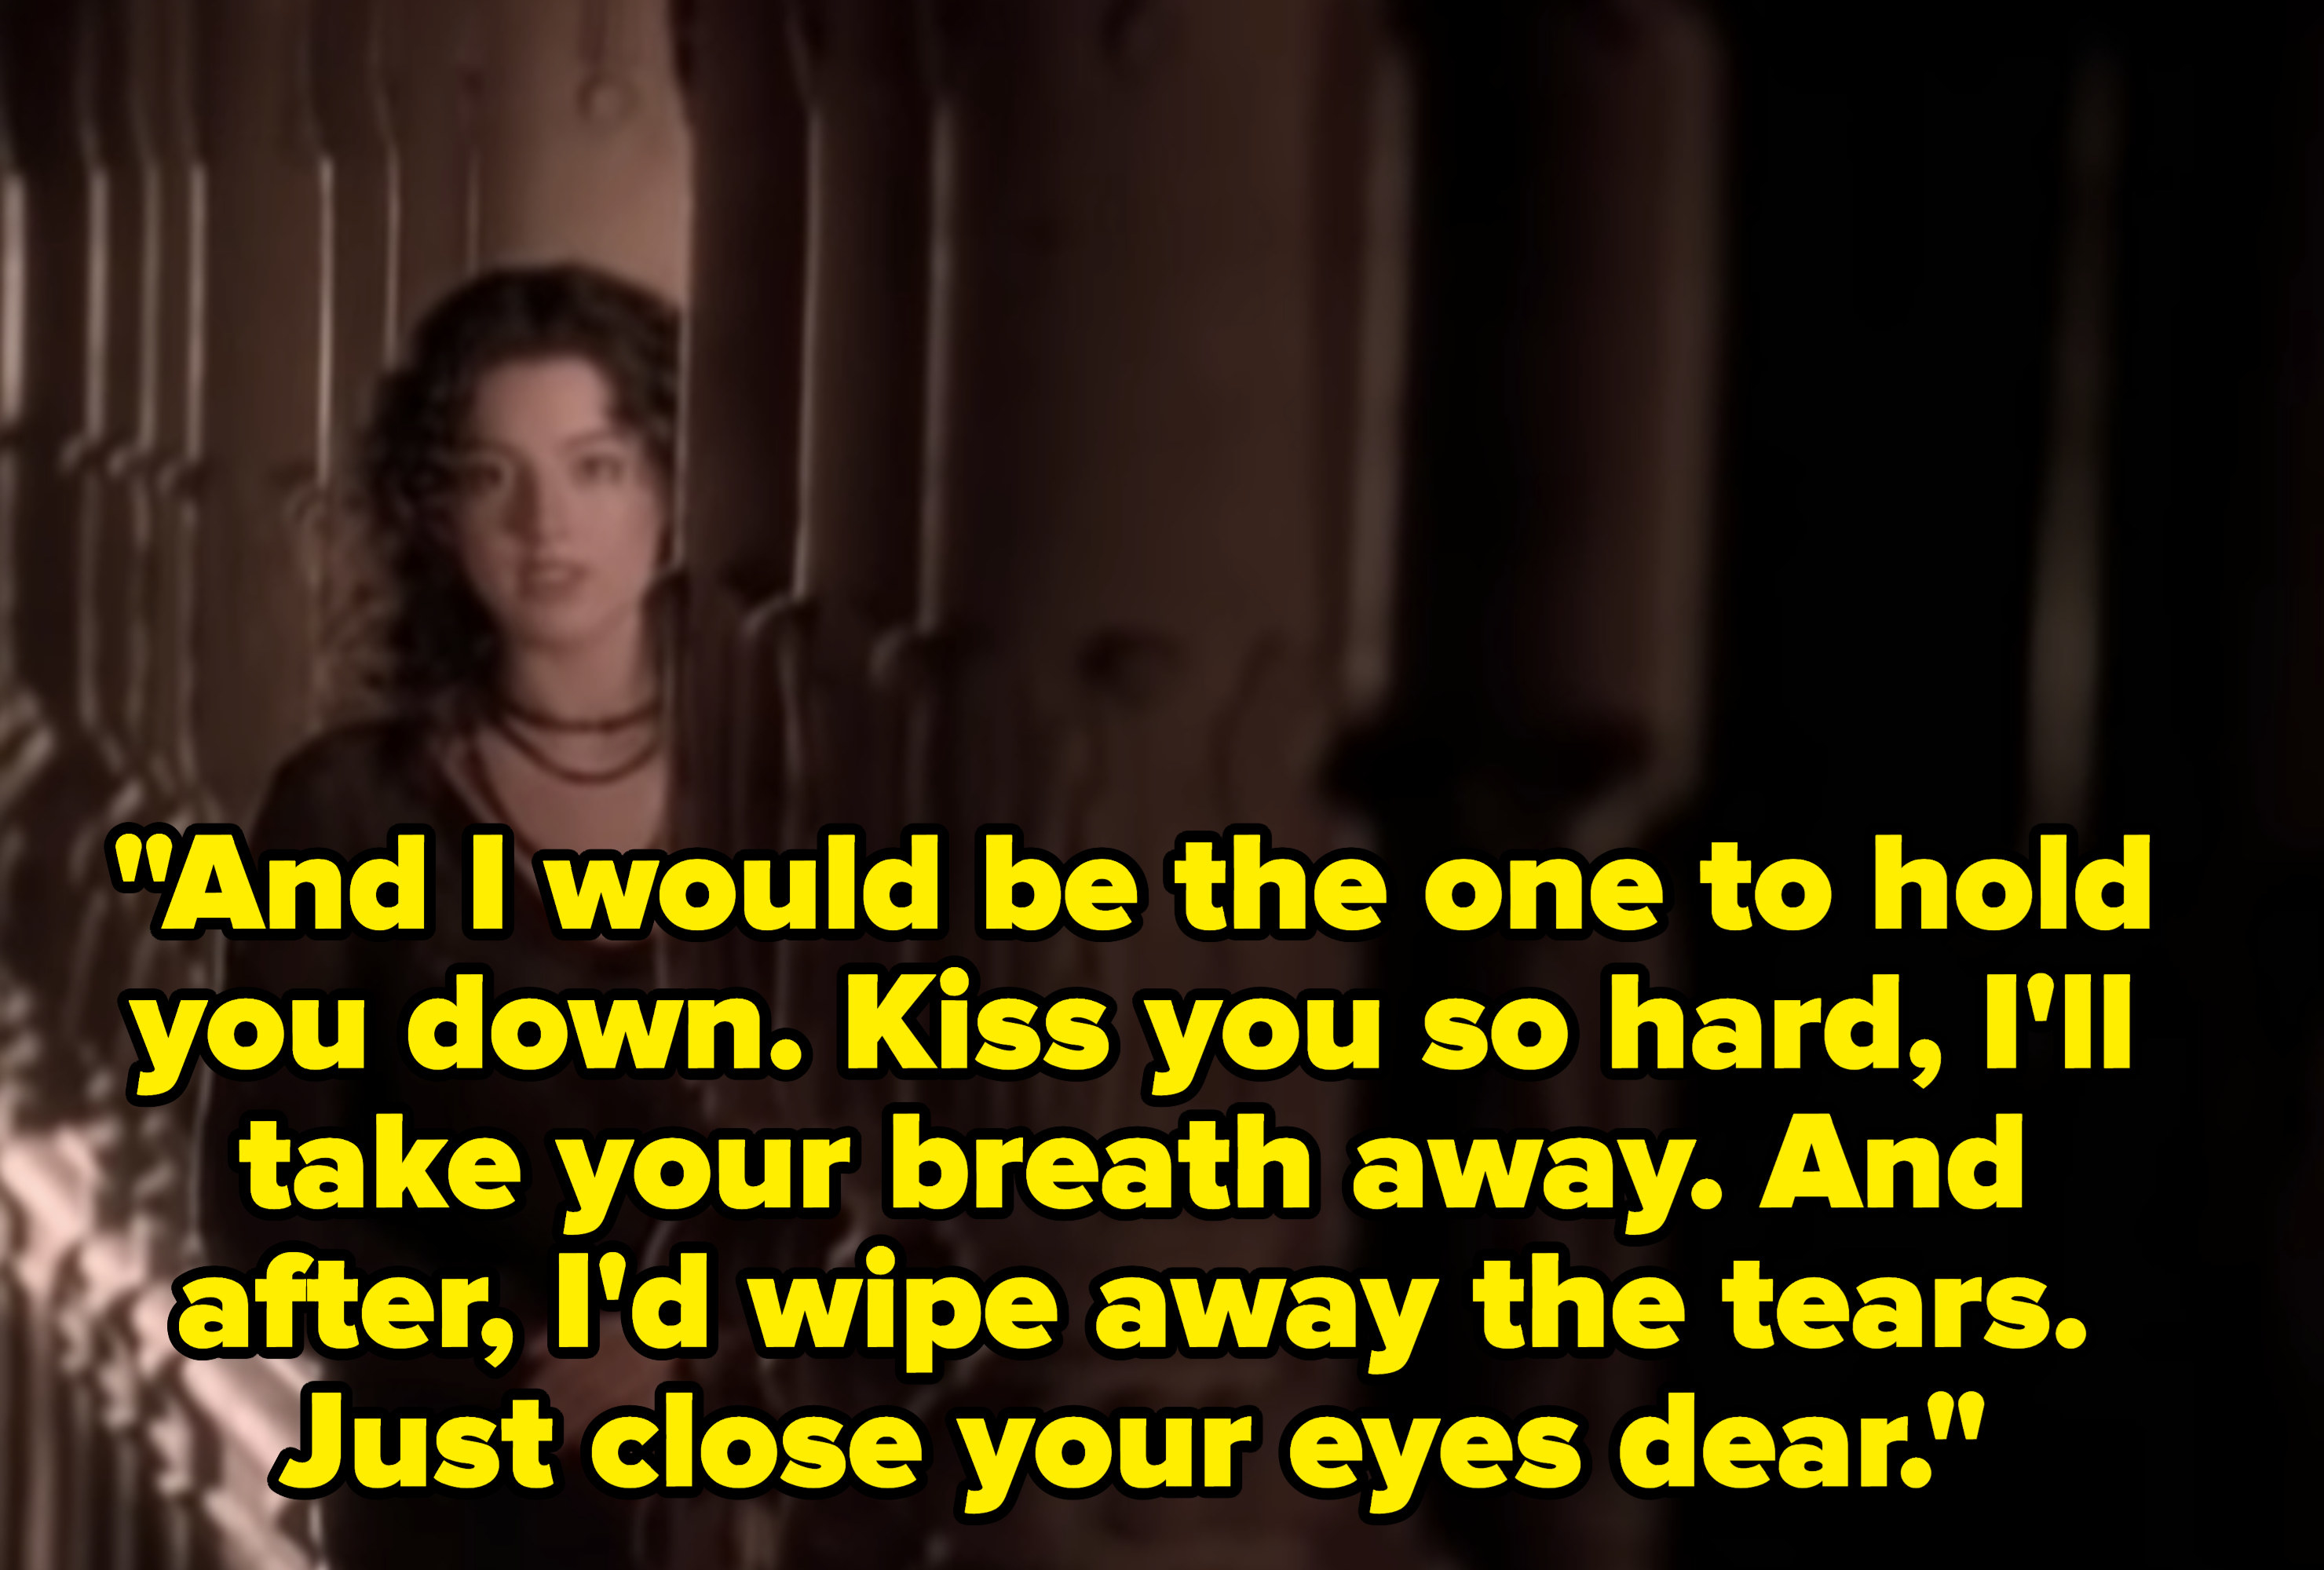 Lyrics: And I would be the one to hold you down. Kiss you so hard, I'll take your breath away. And after, I'd wipe away the tears. Just close your eyes dear